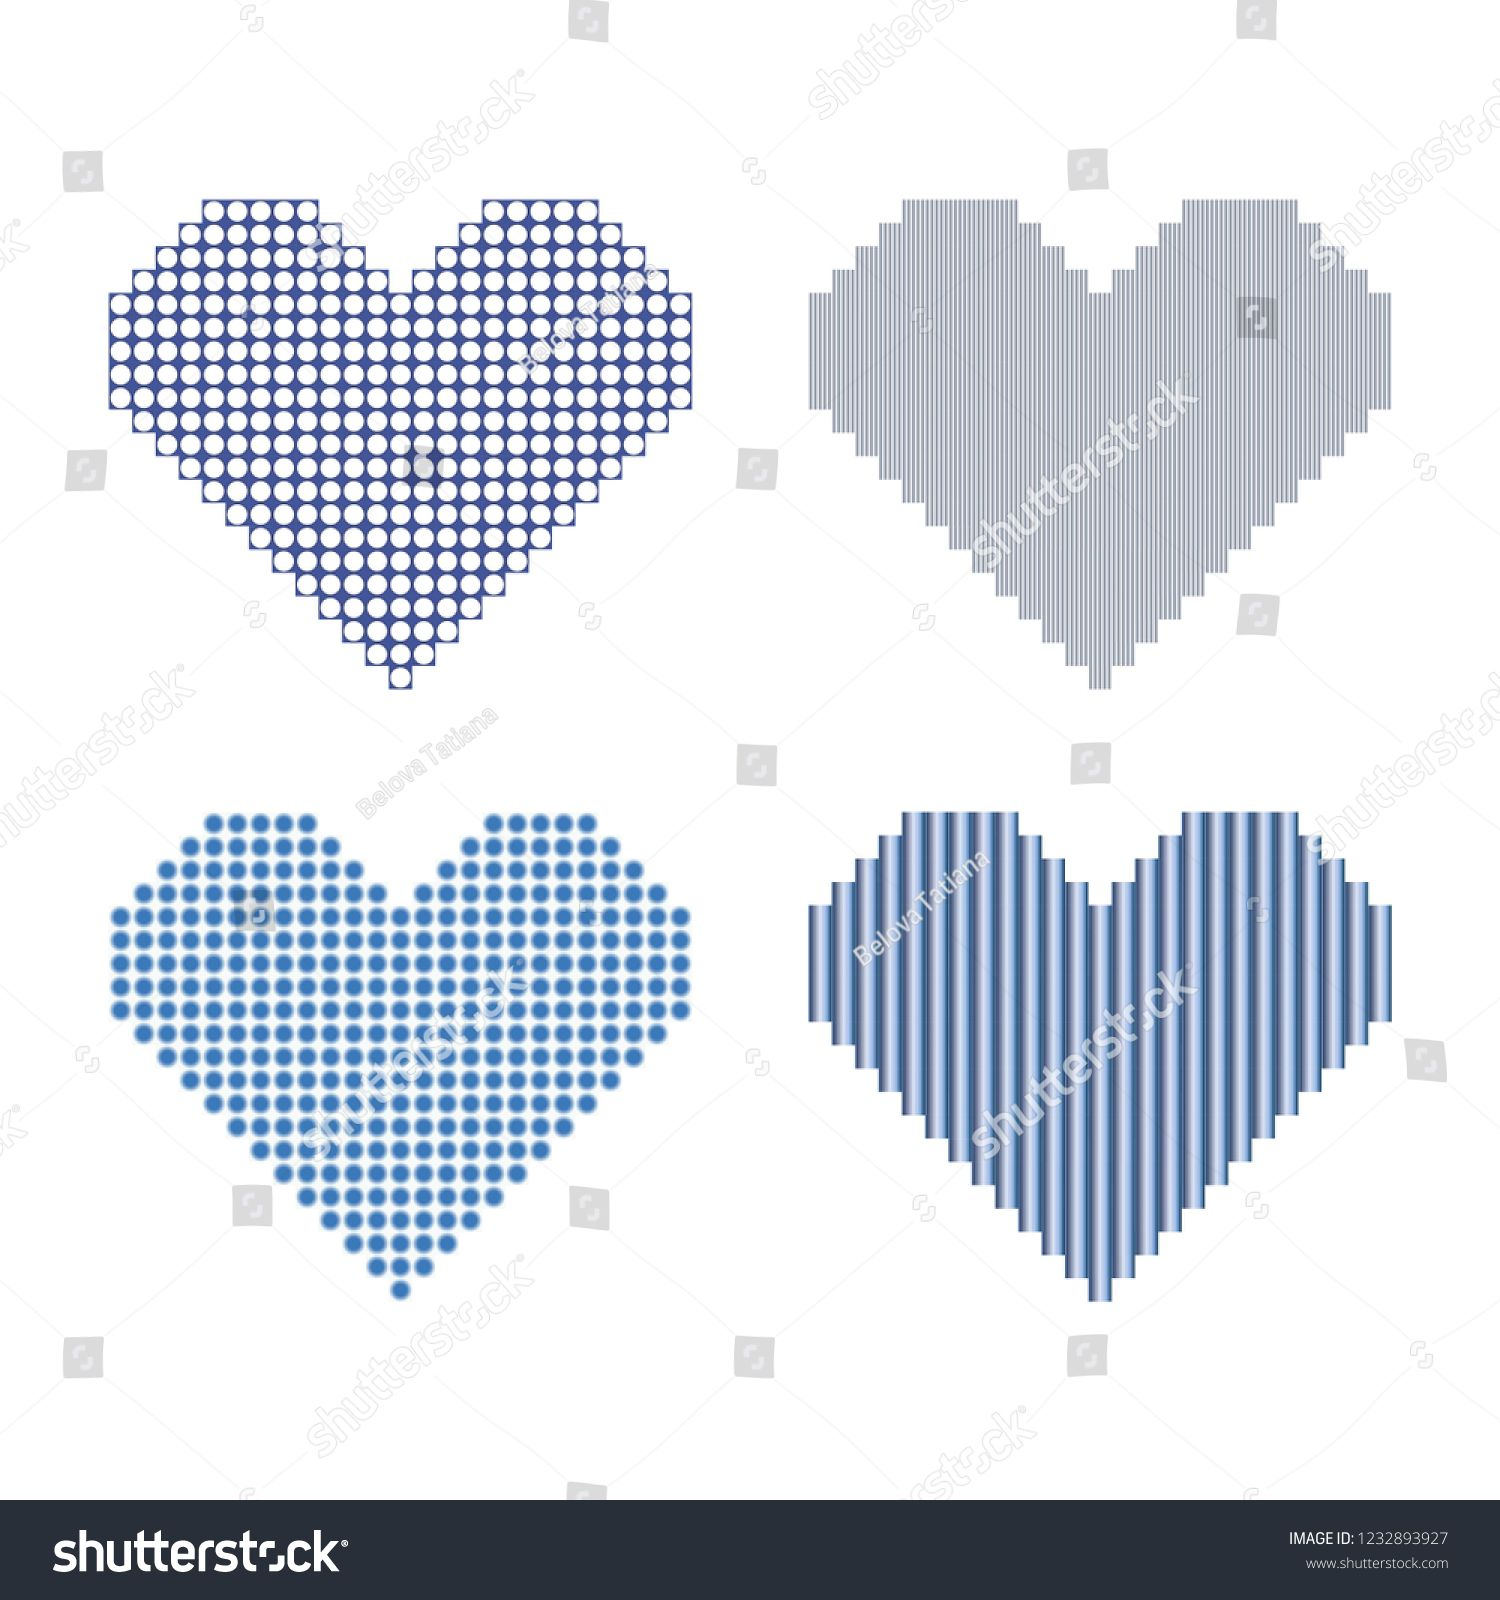 Set of style pixel hearts isolated on the white background #Ad , #Paid, #pixel#style#Set#hearts